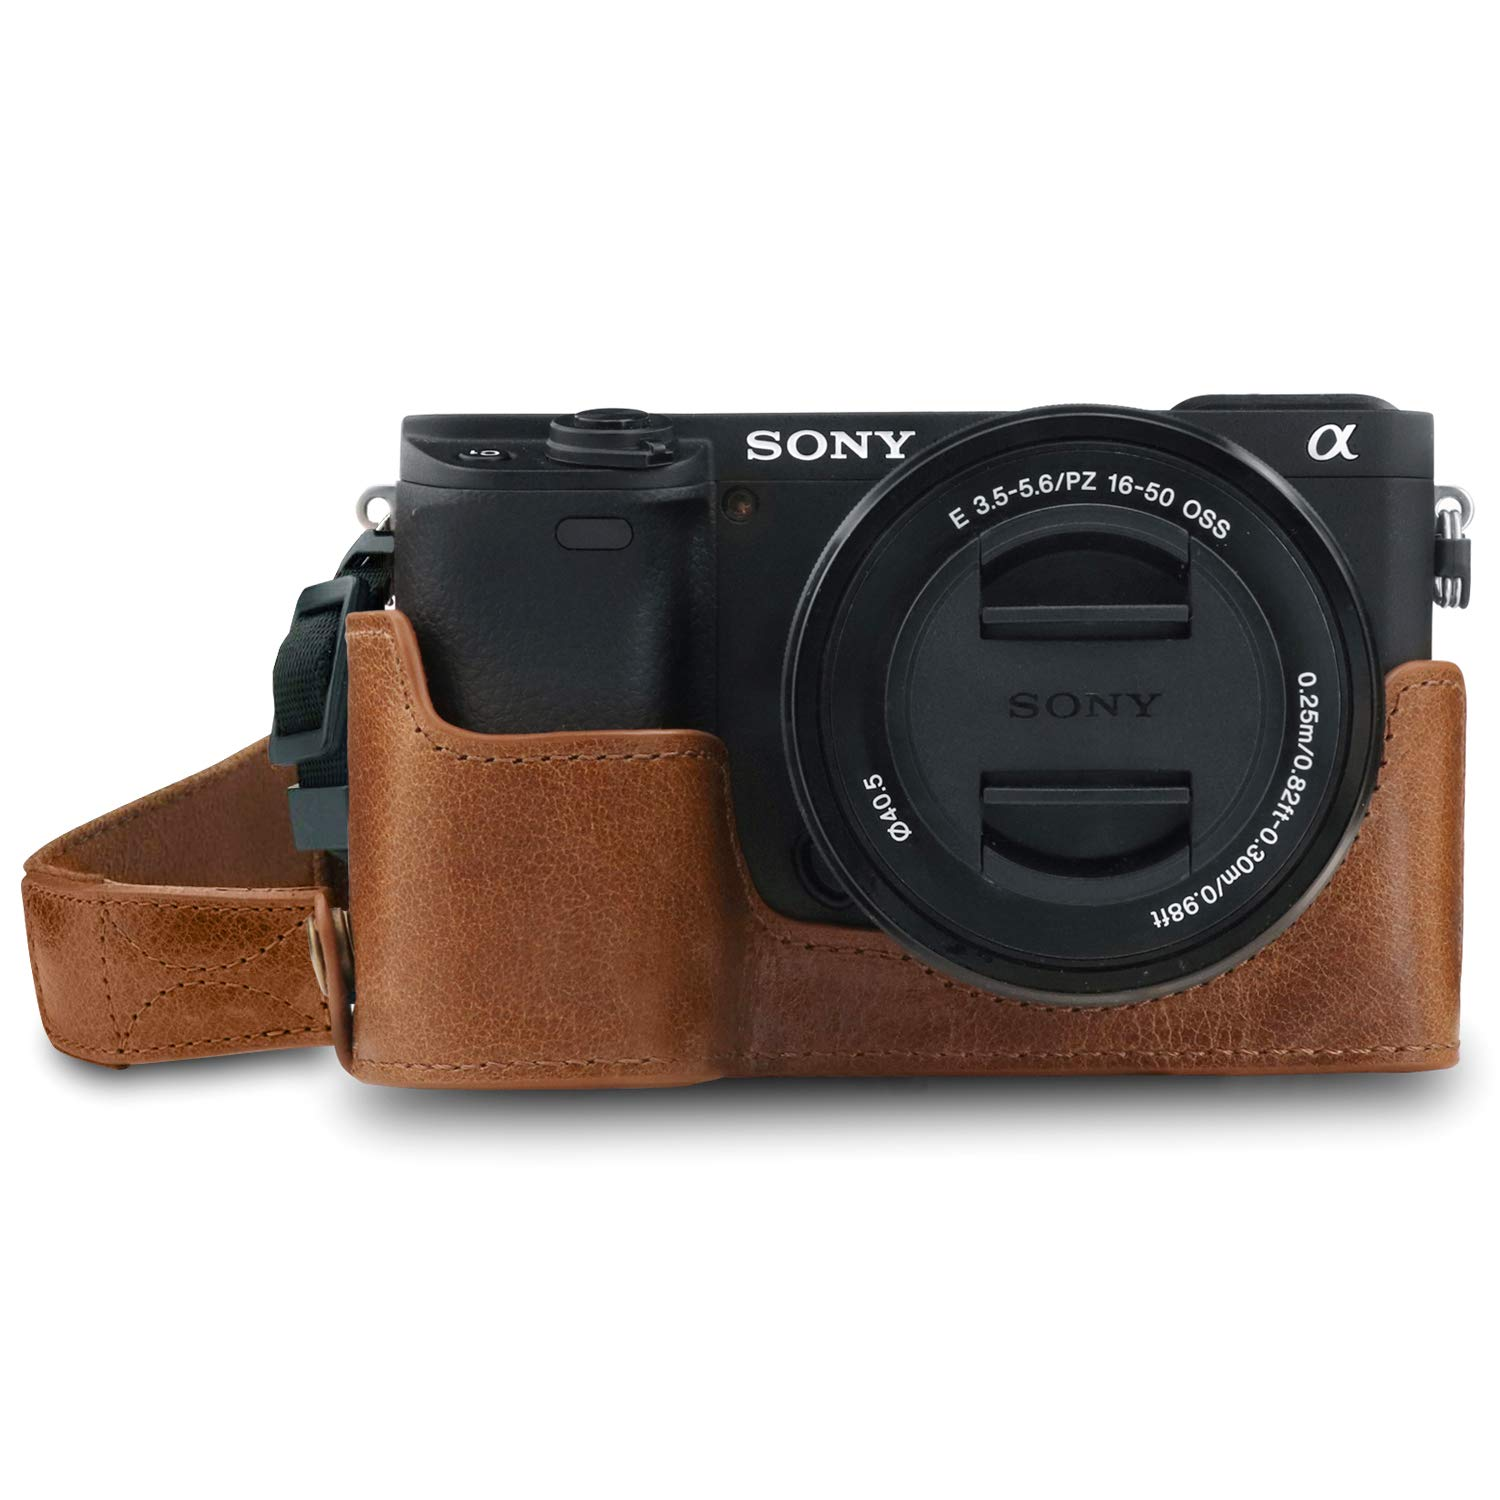 Megagear case for Sony